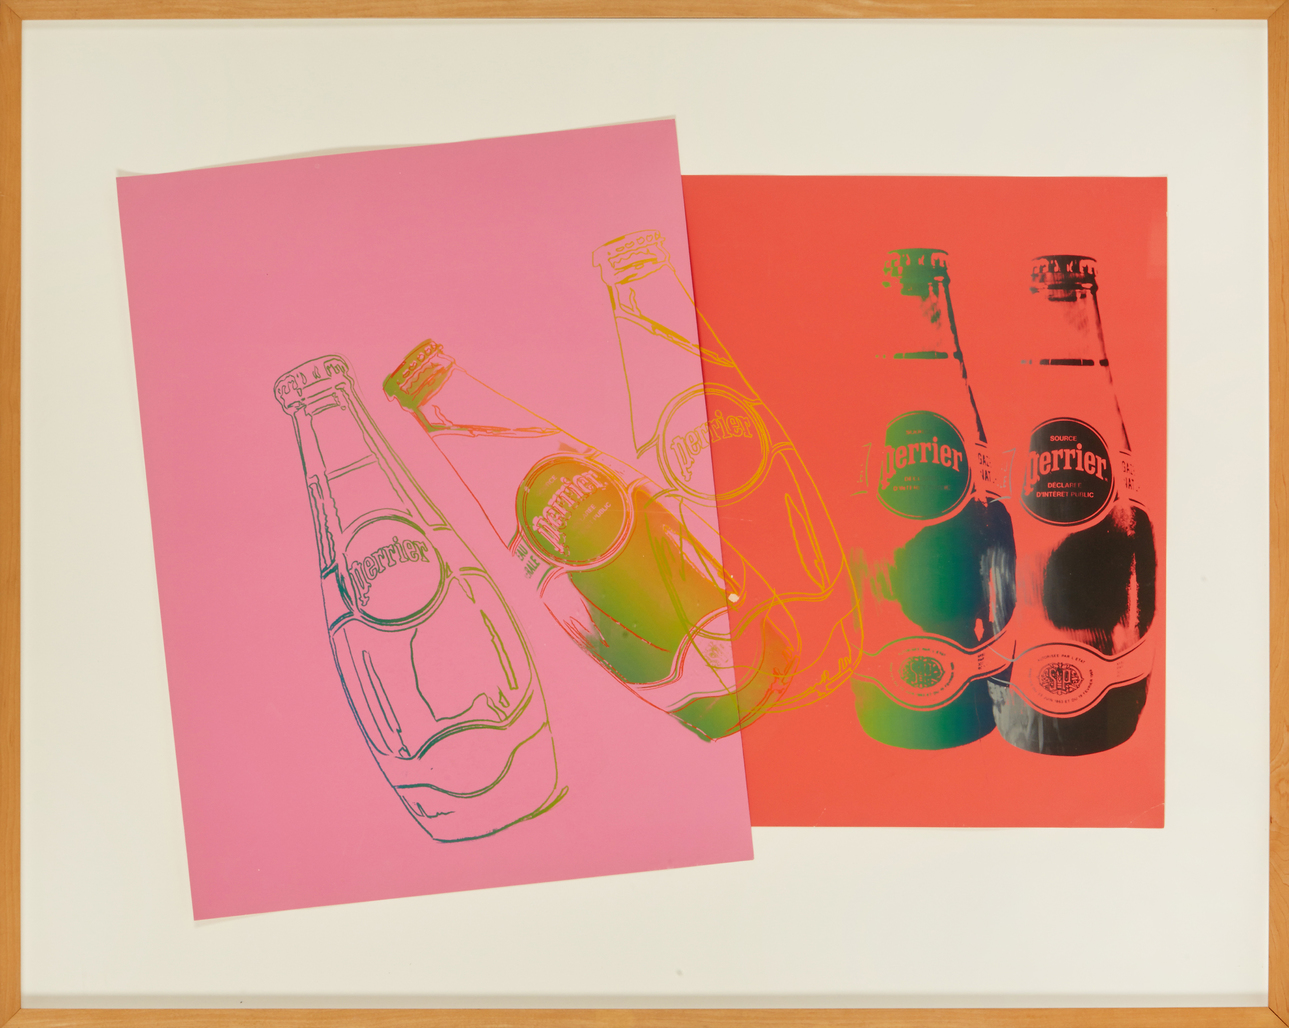 Perrier by Warhol Andy